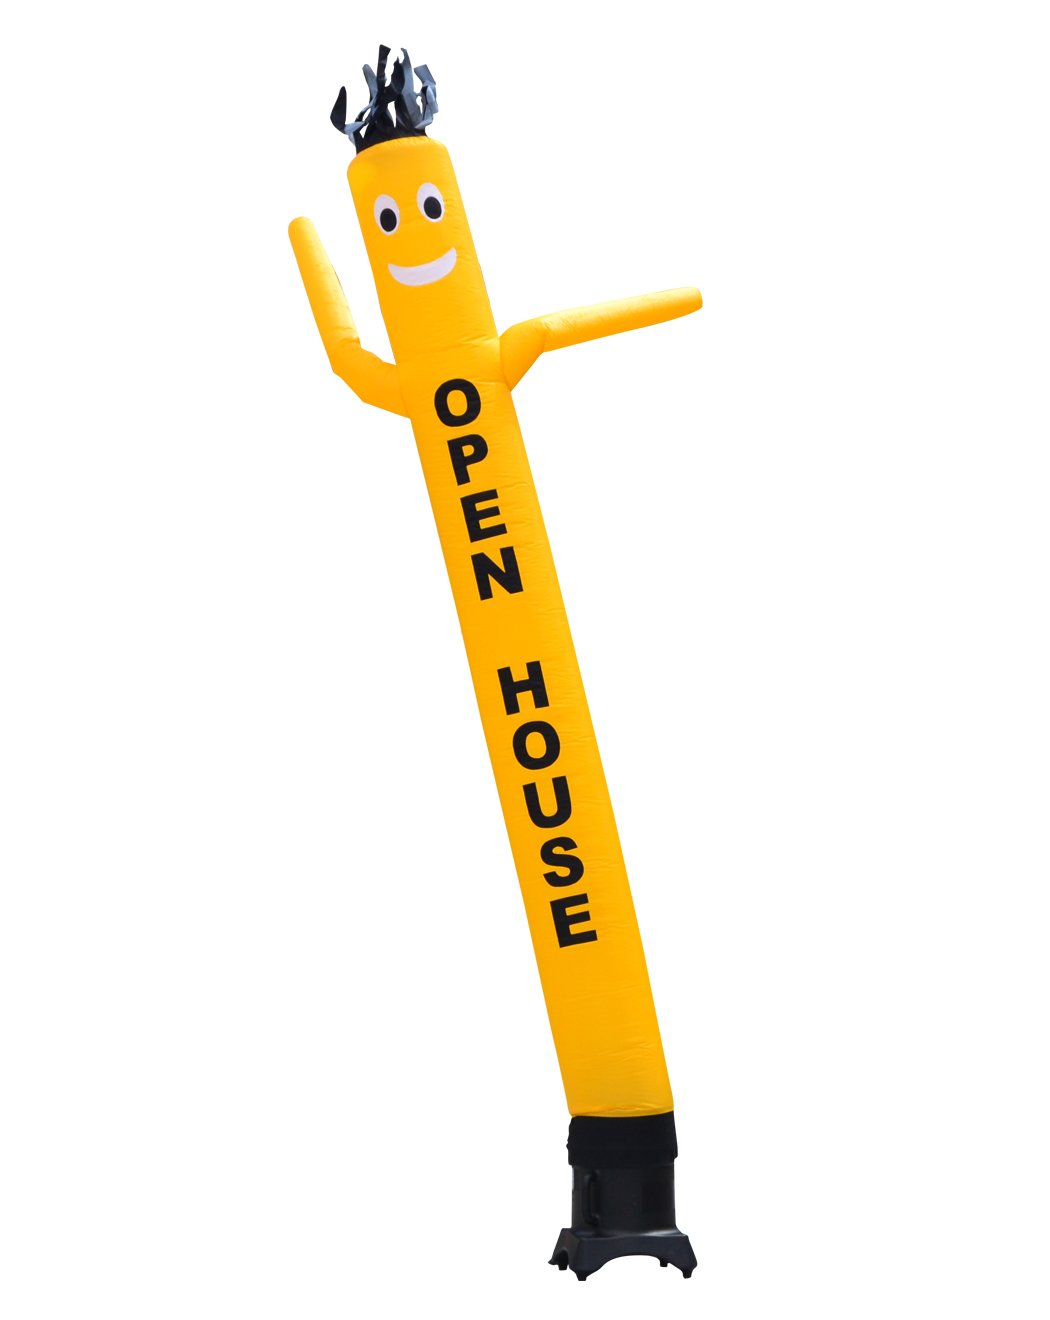 LookOurWay Open House Air Dancers Inflatable Tube Man Attachment, 10-Feet (No Blower) by LookOurWay